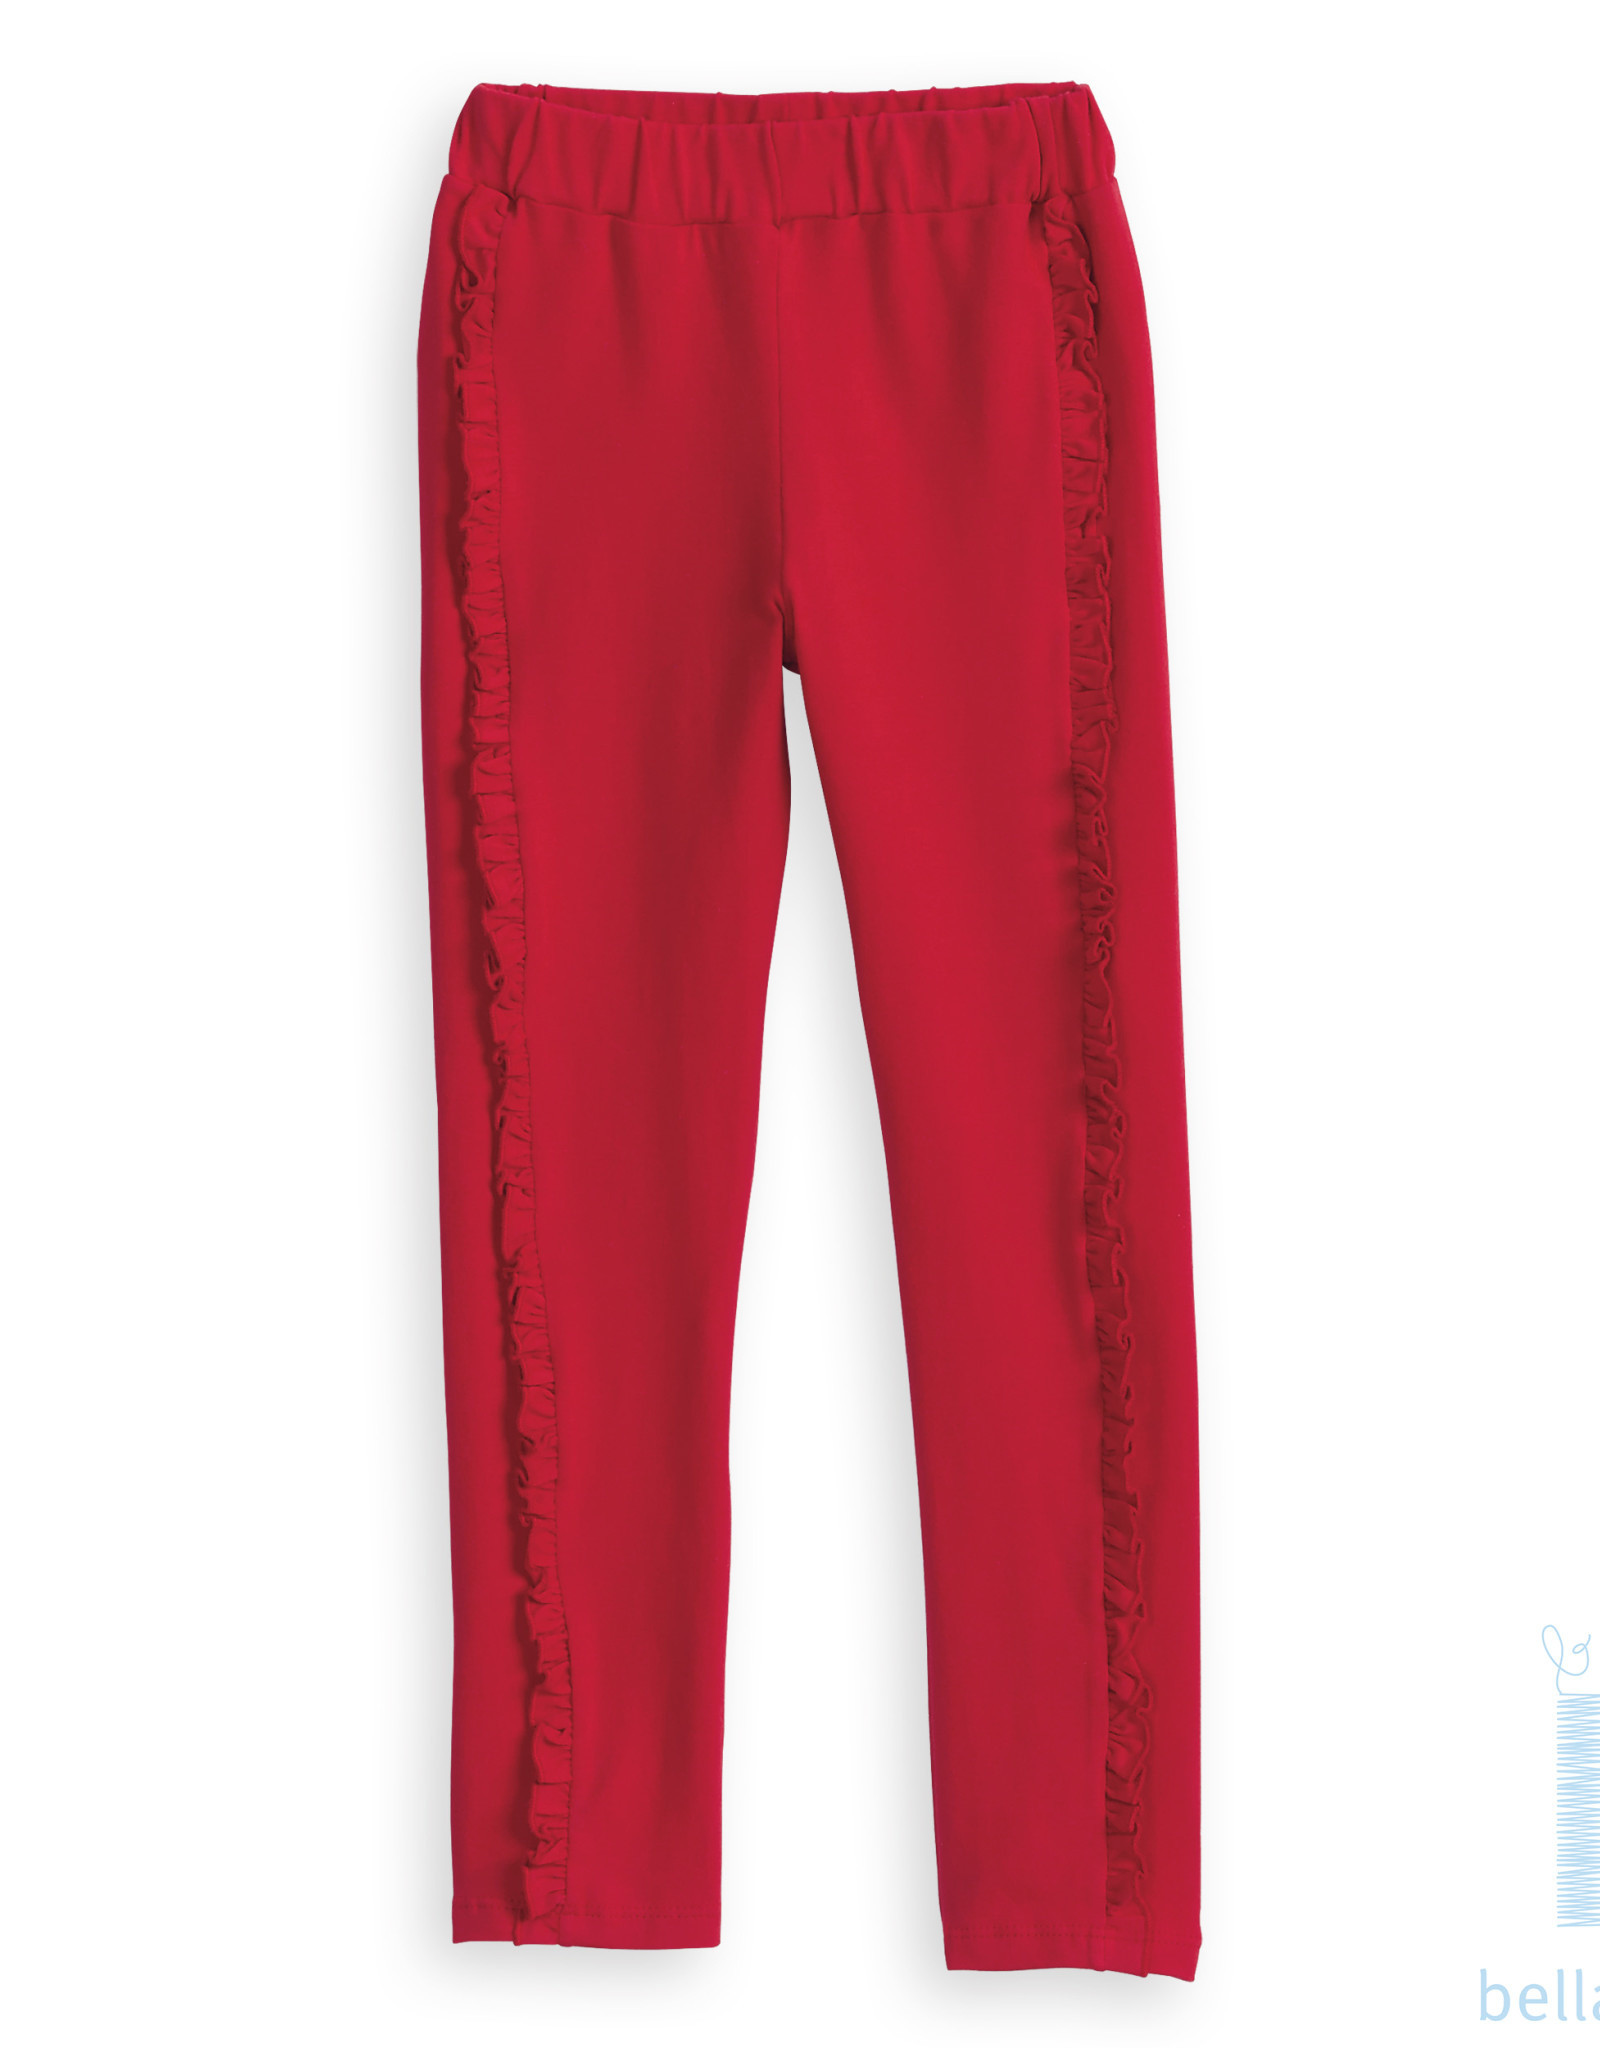 Bella Bliss Jersey Ruffled Leggings, Red